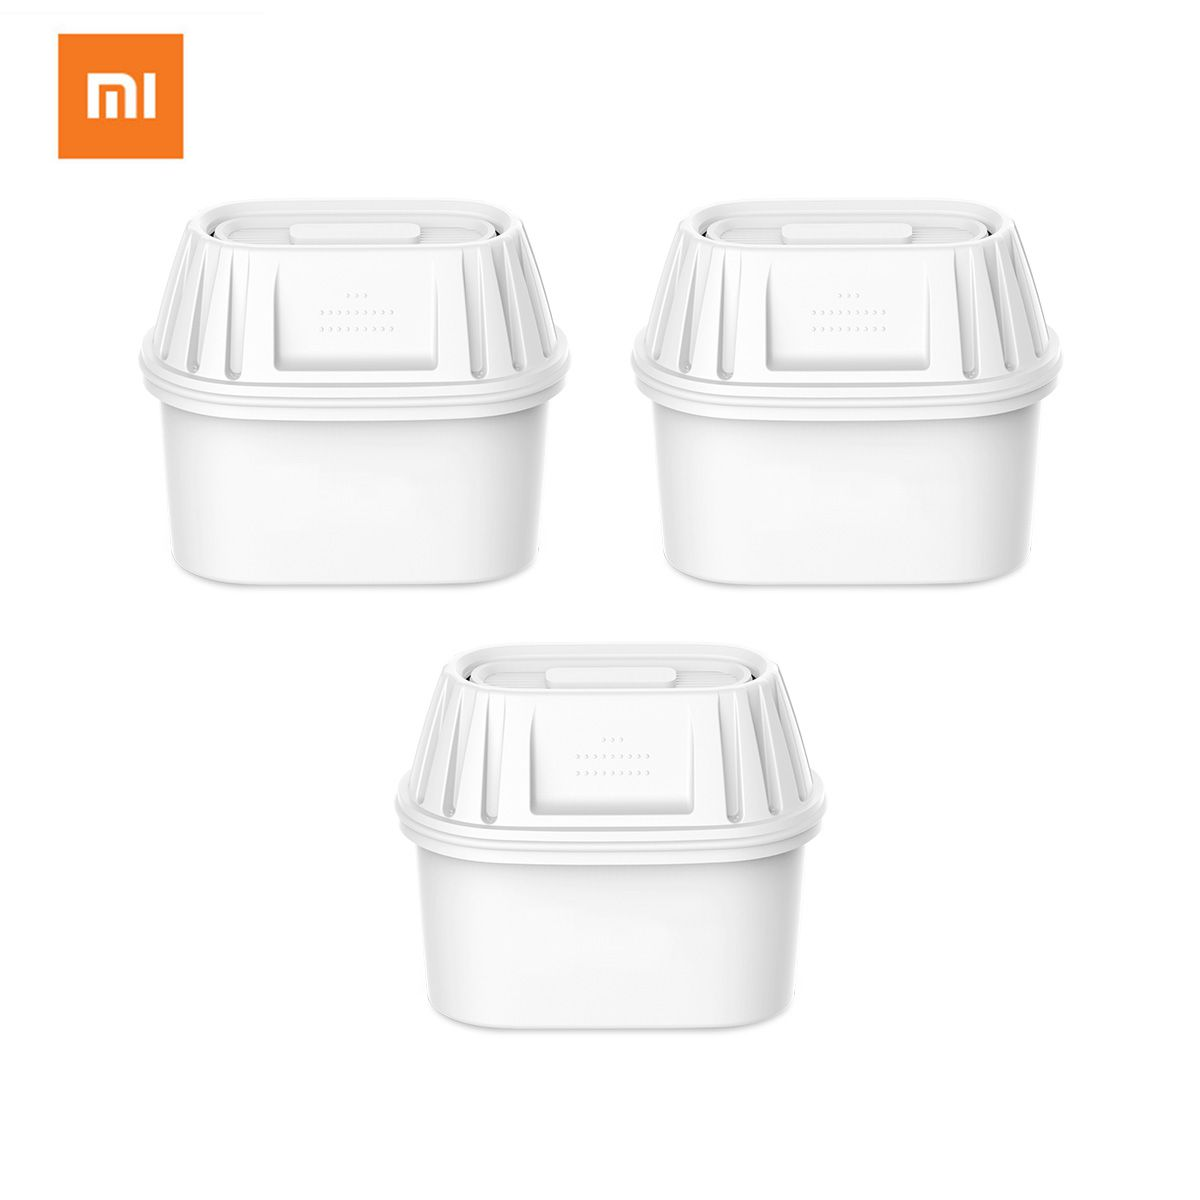 Xiaomi 3pcs Water Filter Pitcher Cartridge Potent 7-layer Filters For Mi Water Pitcher Double Bacteria Prevention 360 Degree